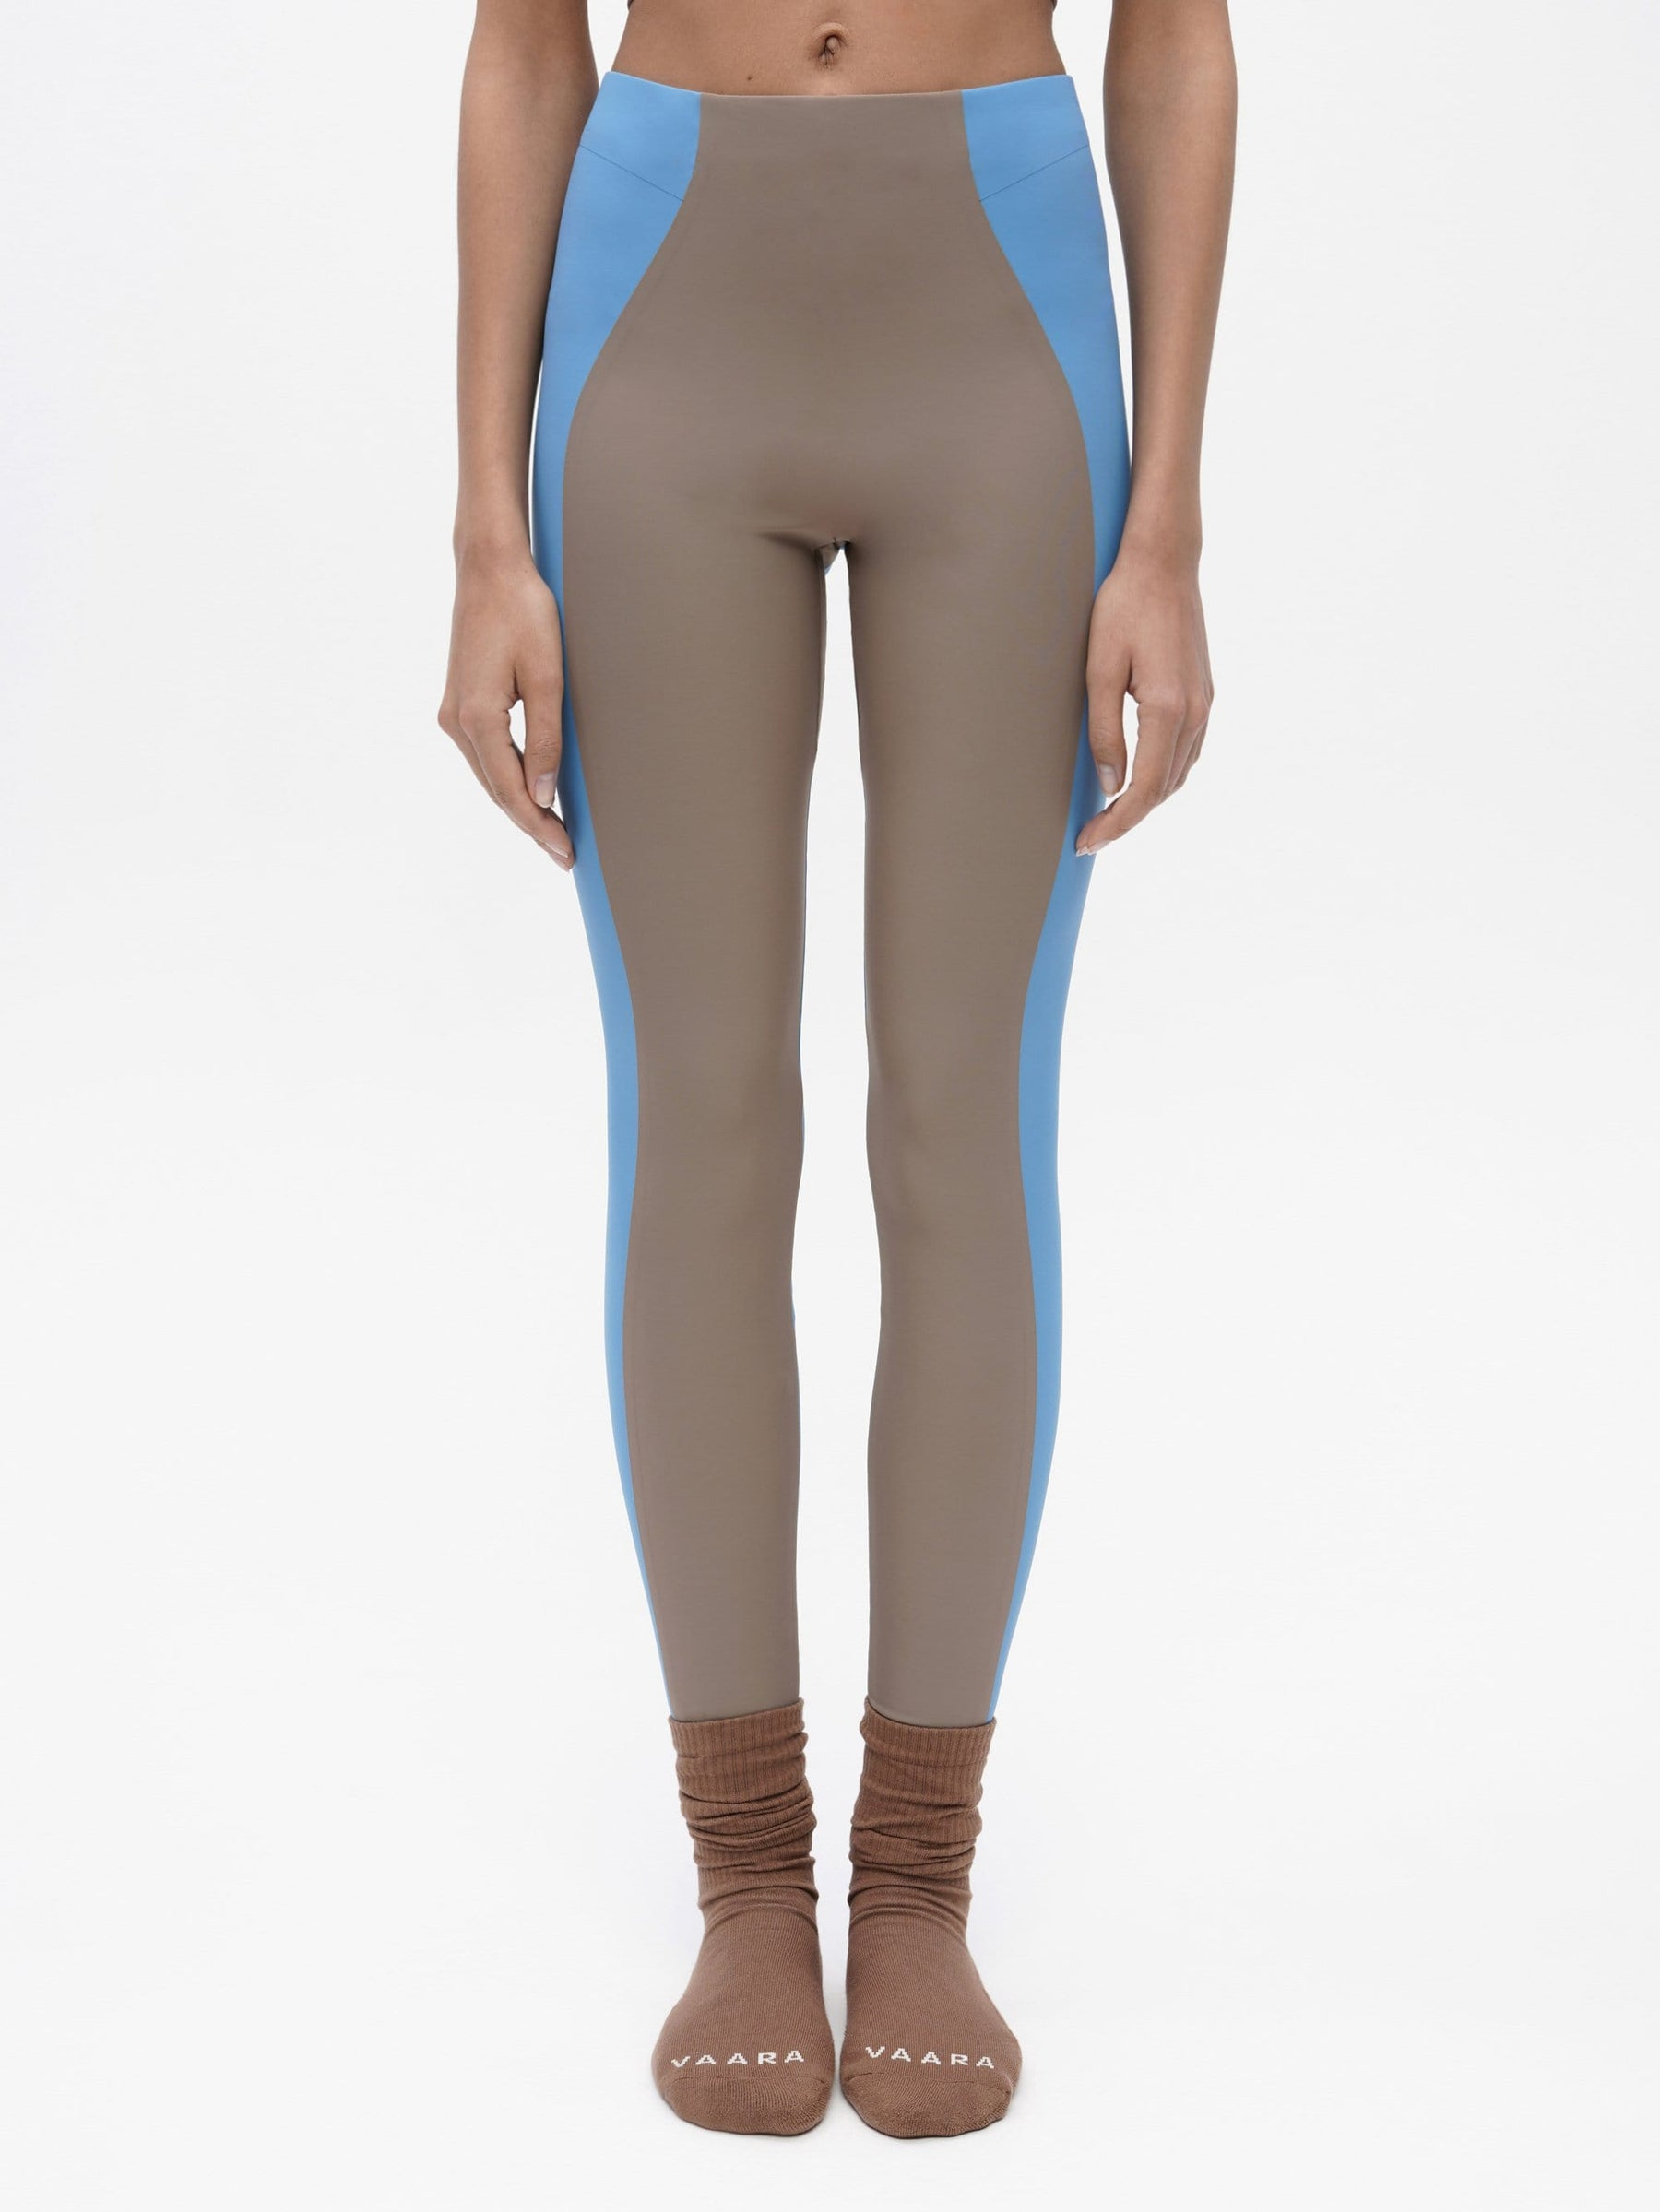 Hourglass Contour Legging Blue